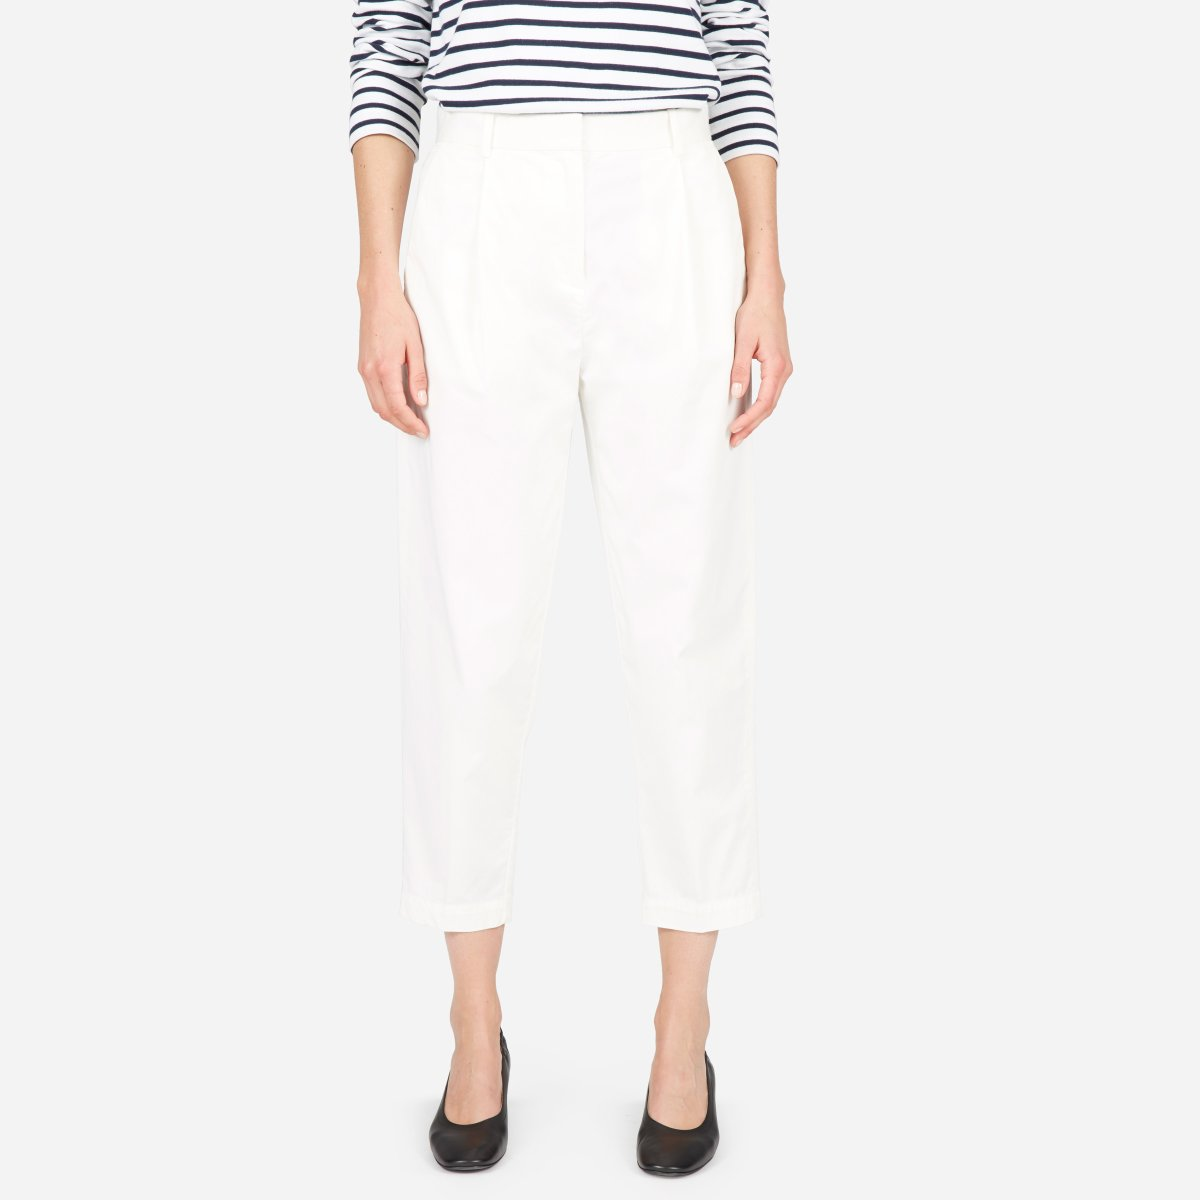 Slouchy Pant $41